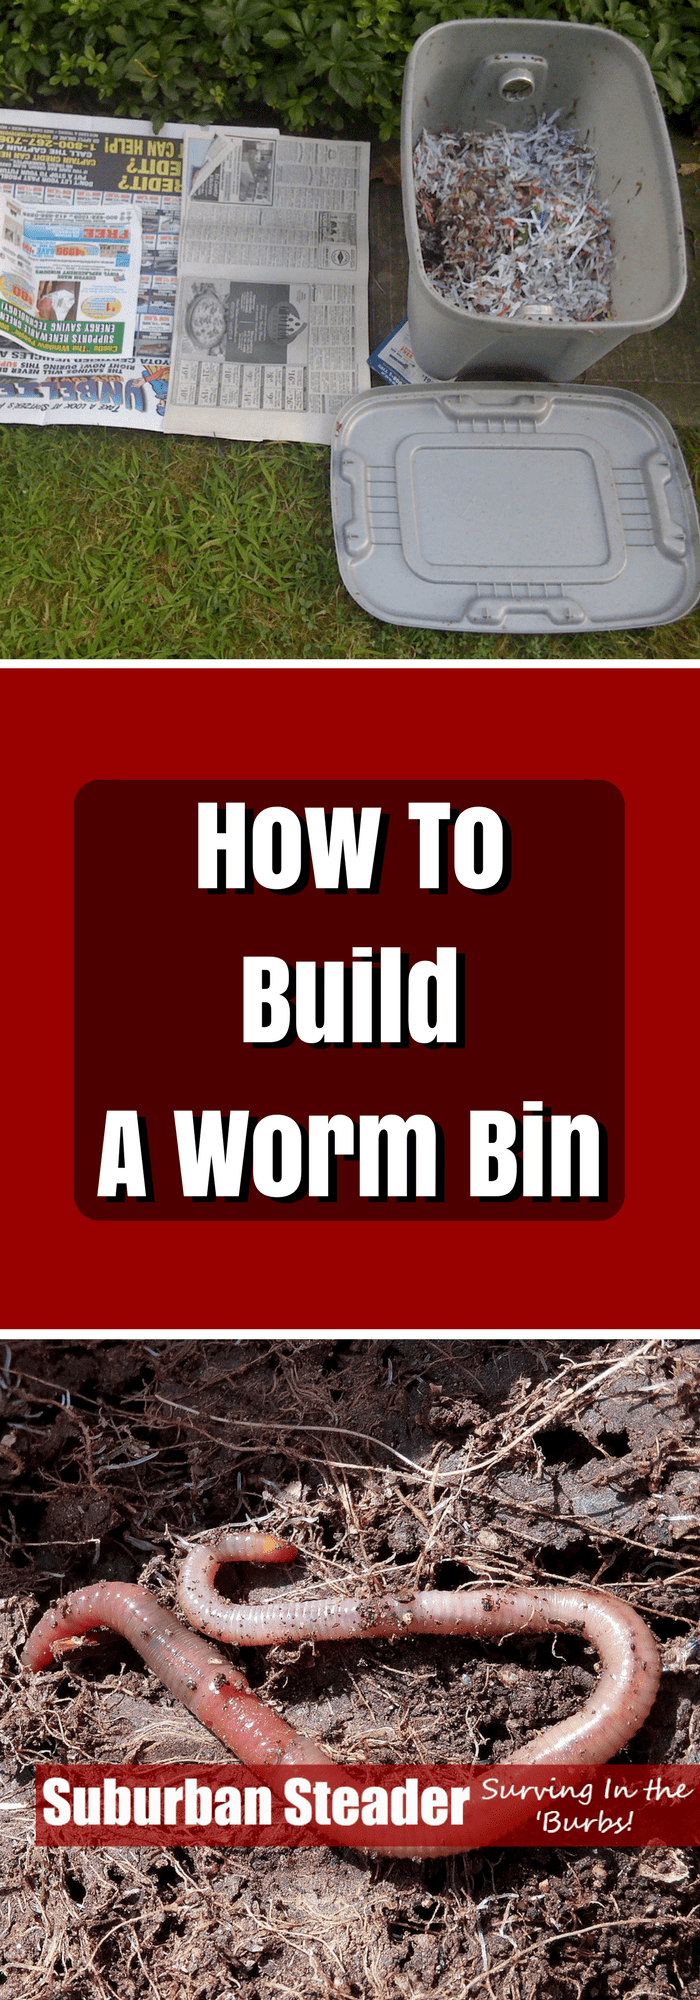 Make And Take Room In A Box Elizabeth Farm: How To Build A Worm Bin